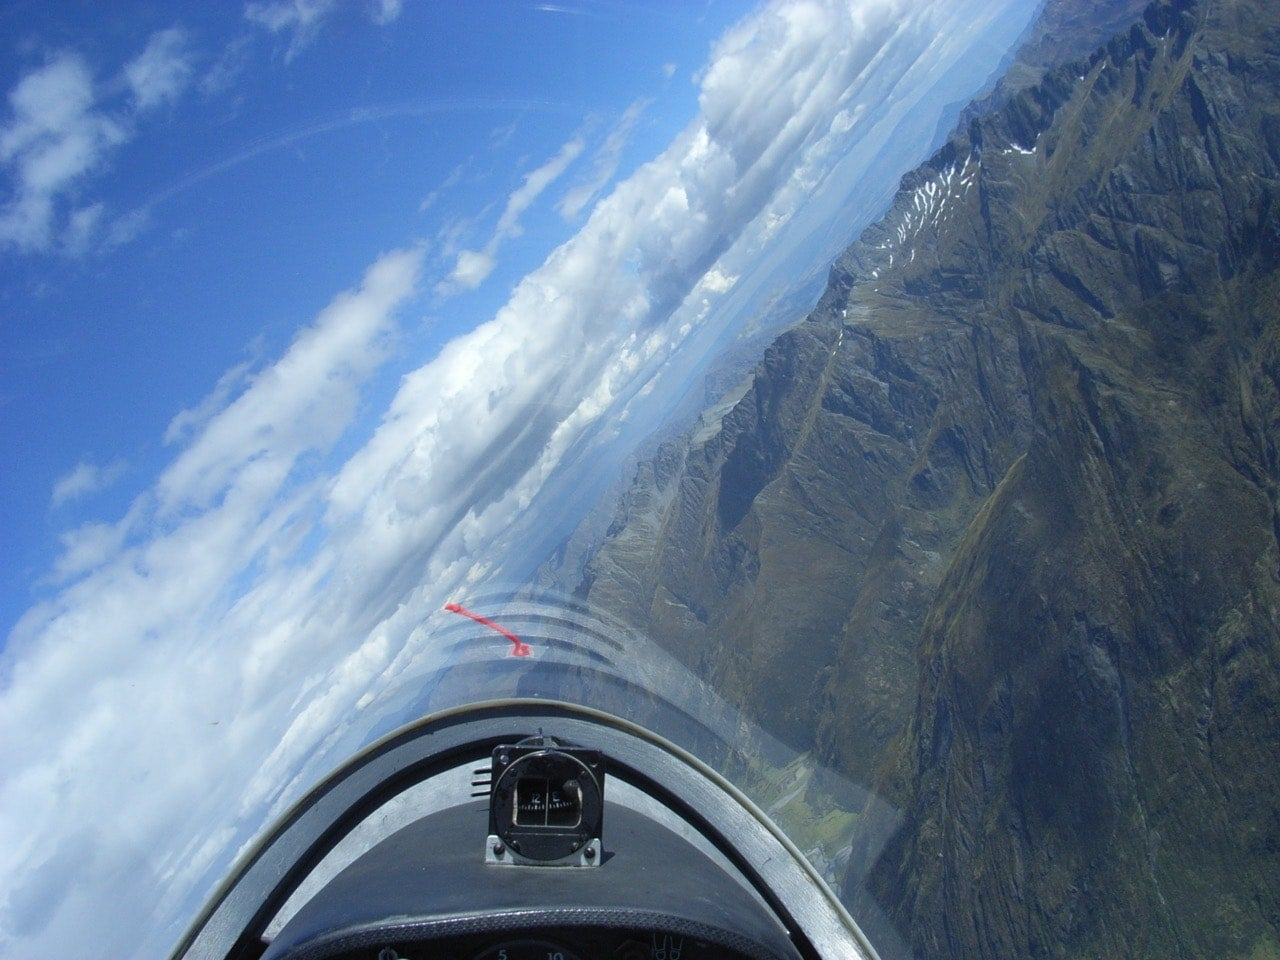 A steep turn above the Southern Alps, New Zealand.